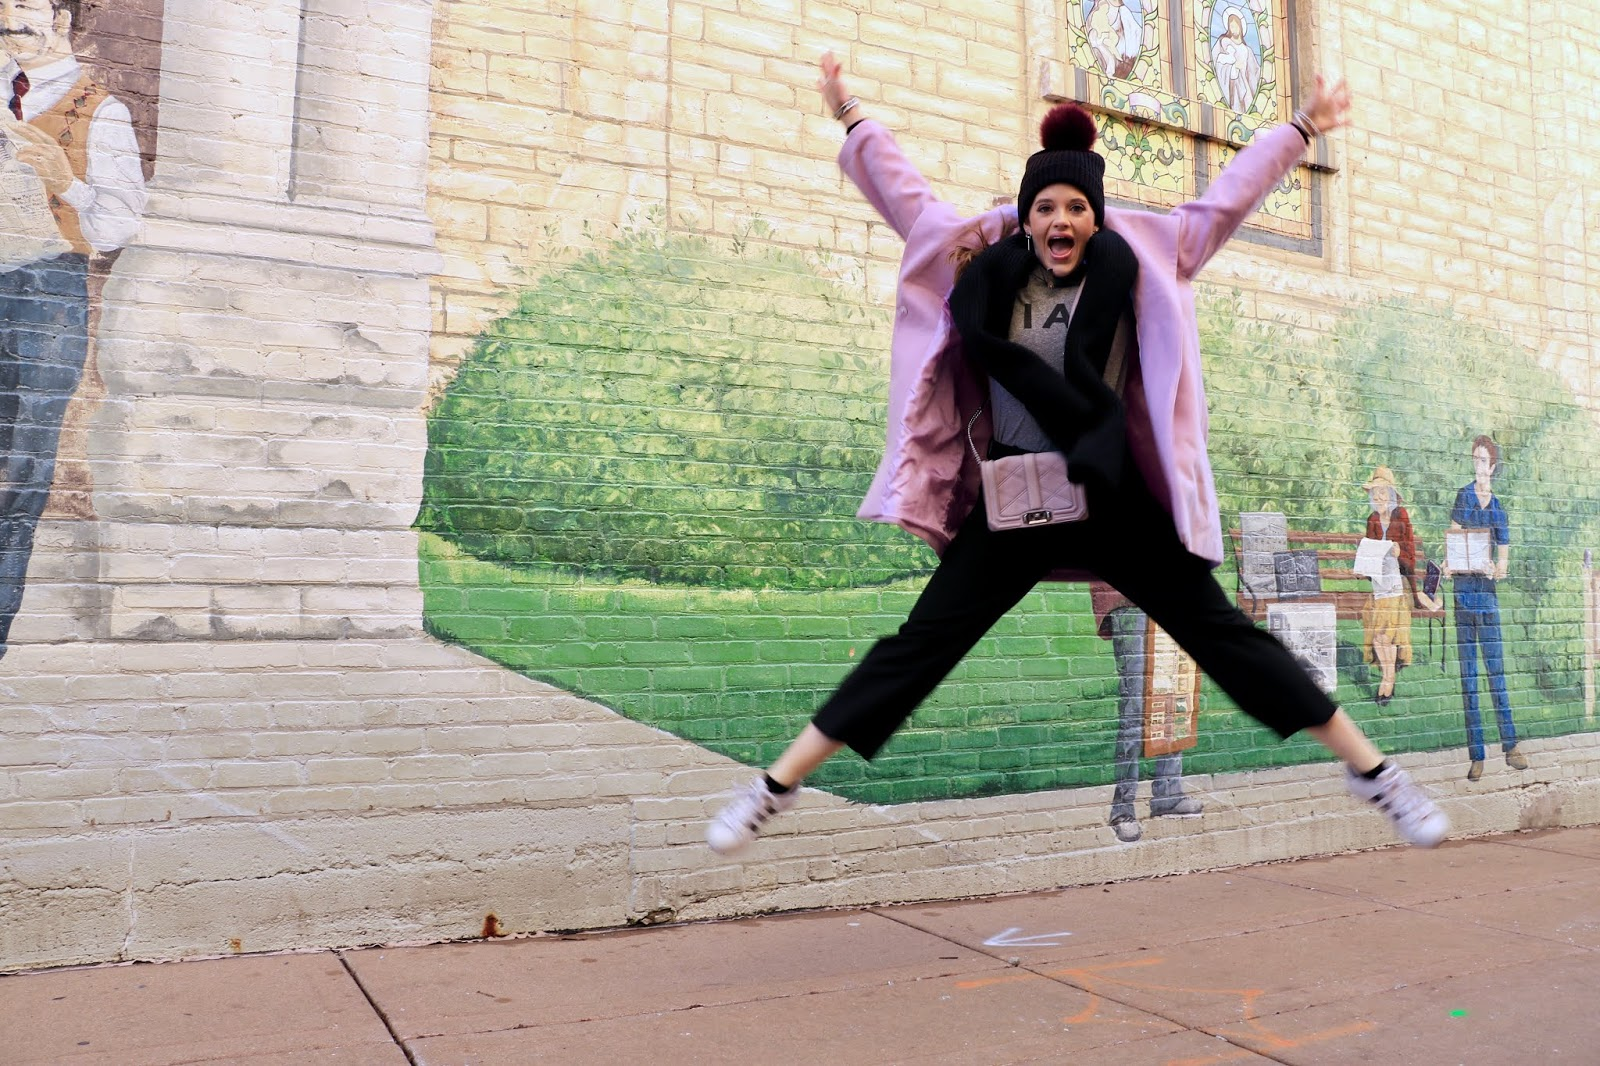 Nyc fashion blogger Kathleen Harper's cute action pic idea